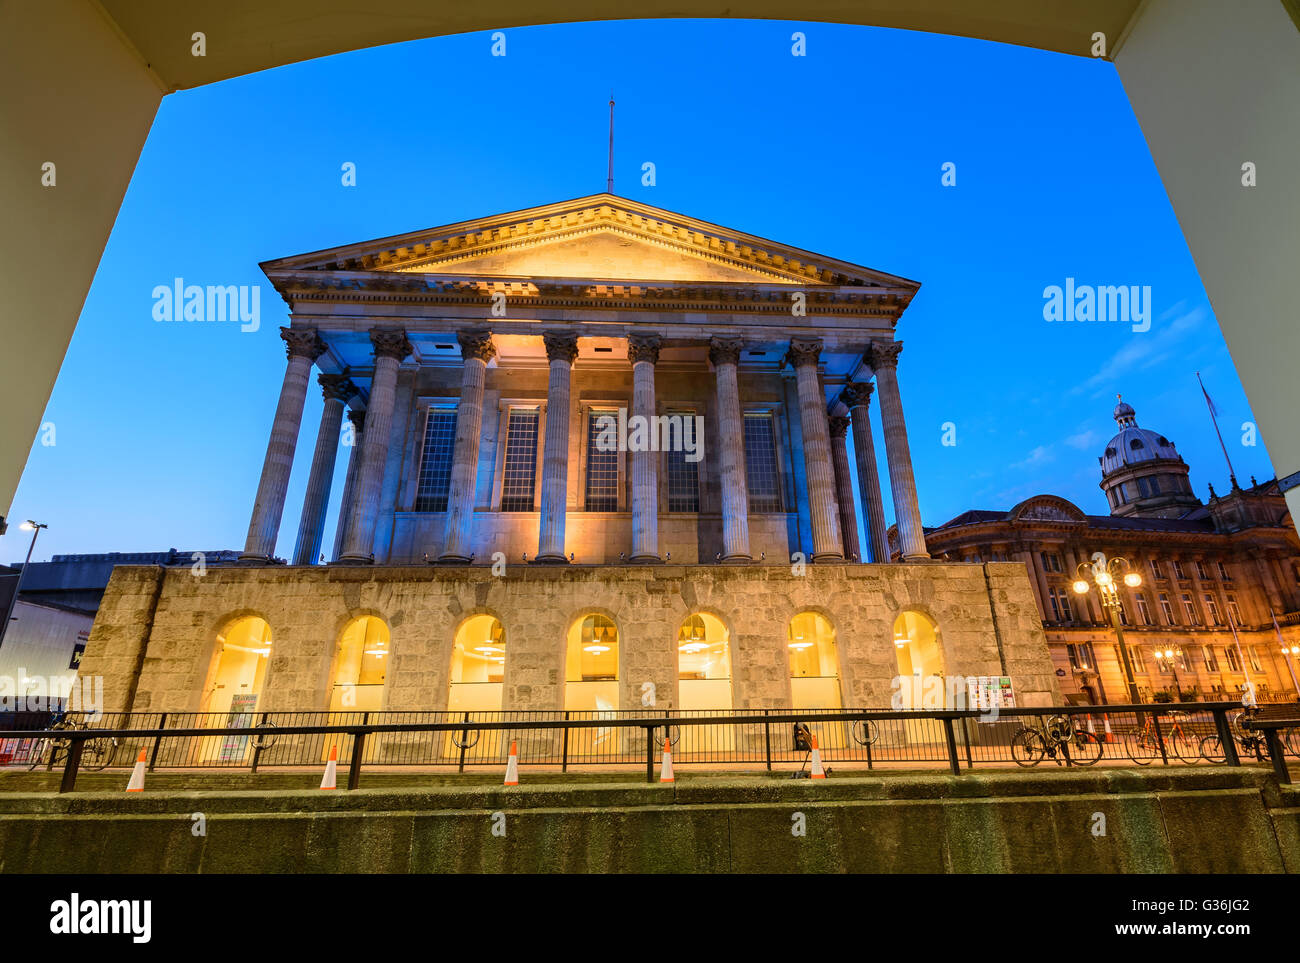 Birmingham council house is located at the victoria square, Birmingham, England. - Stock Image